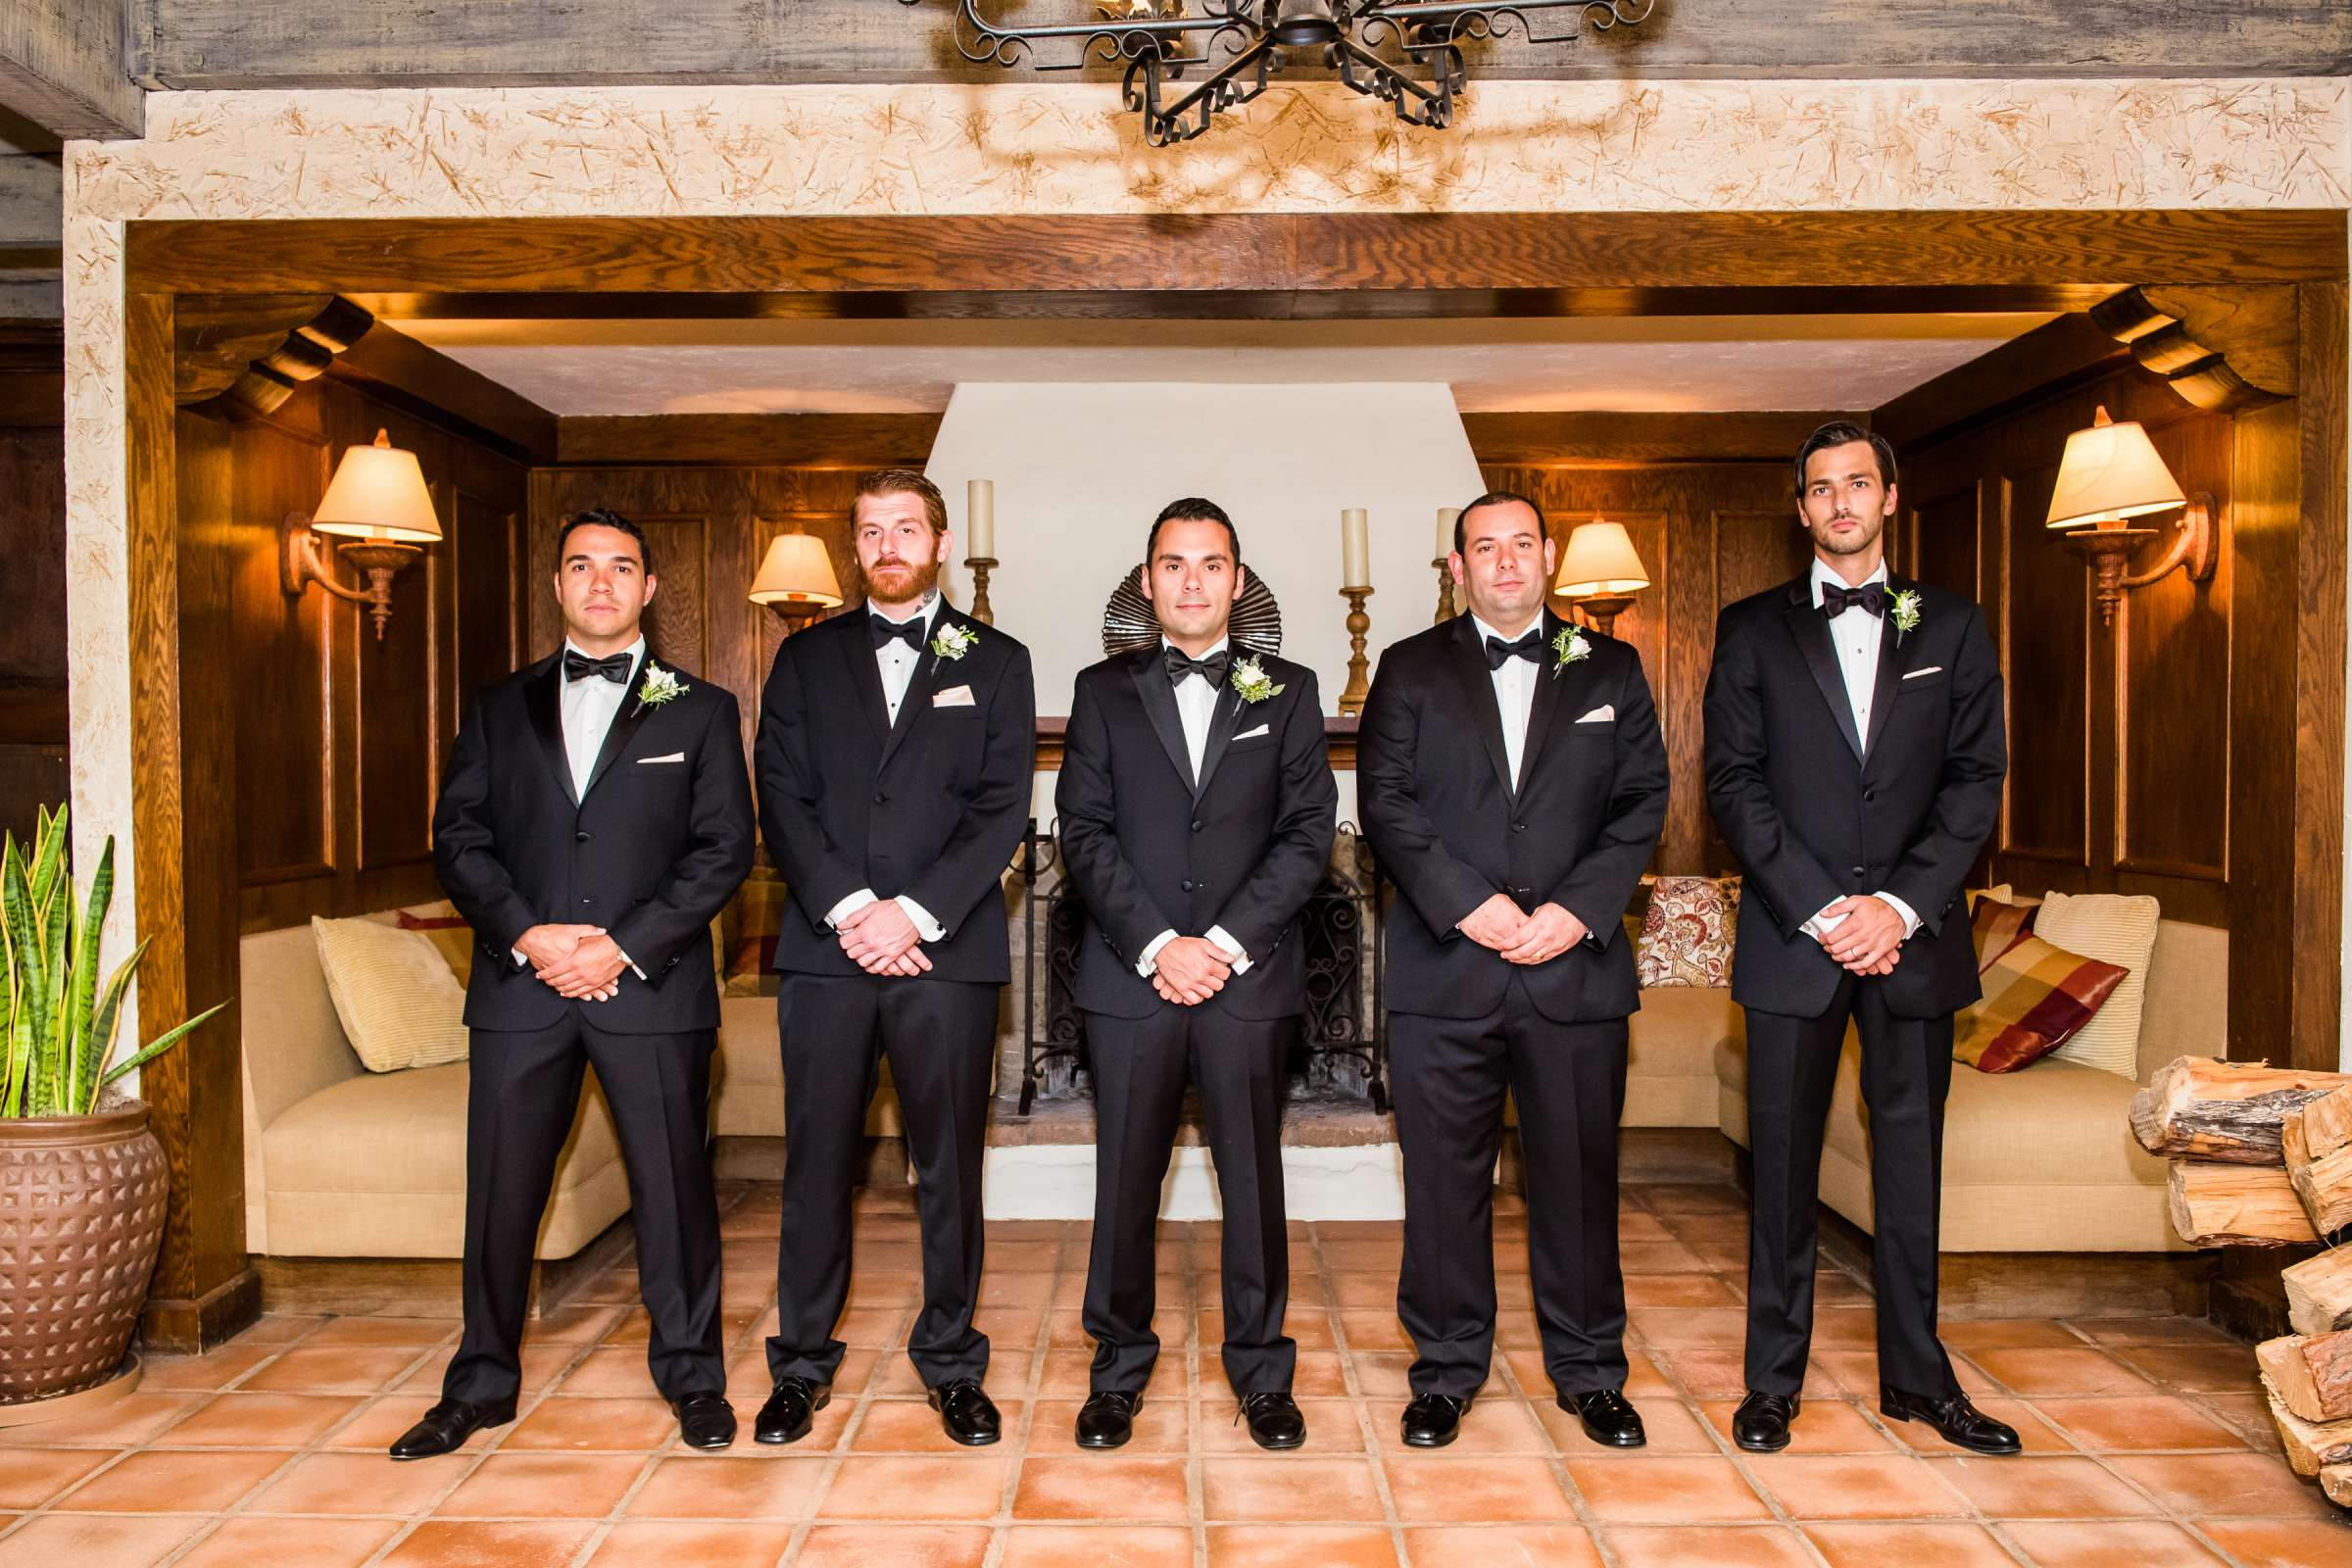 Rancho Bernardo Inn Wedding coordinated by Très Chic Events, Stefania and Nicholas Wedding Photo #28 by True Photography